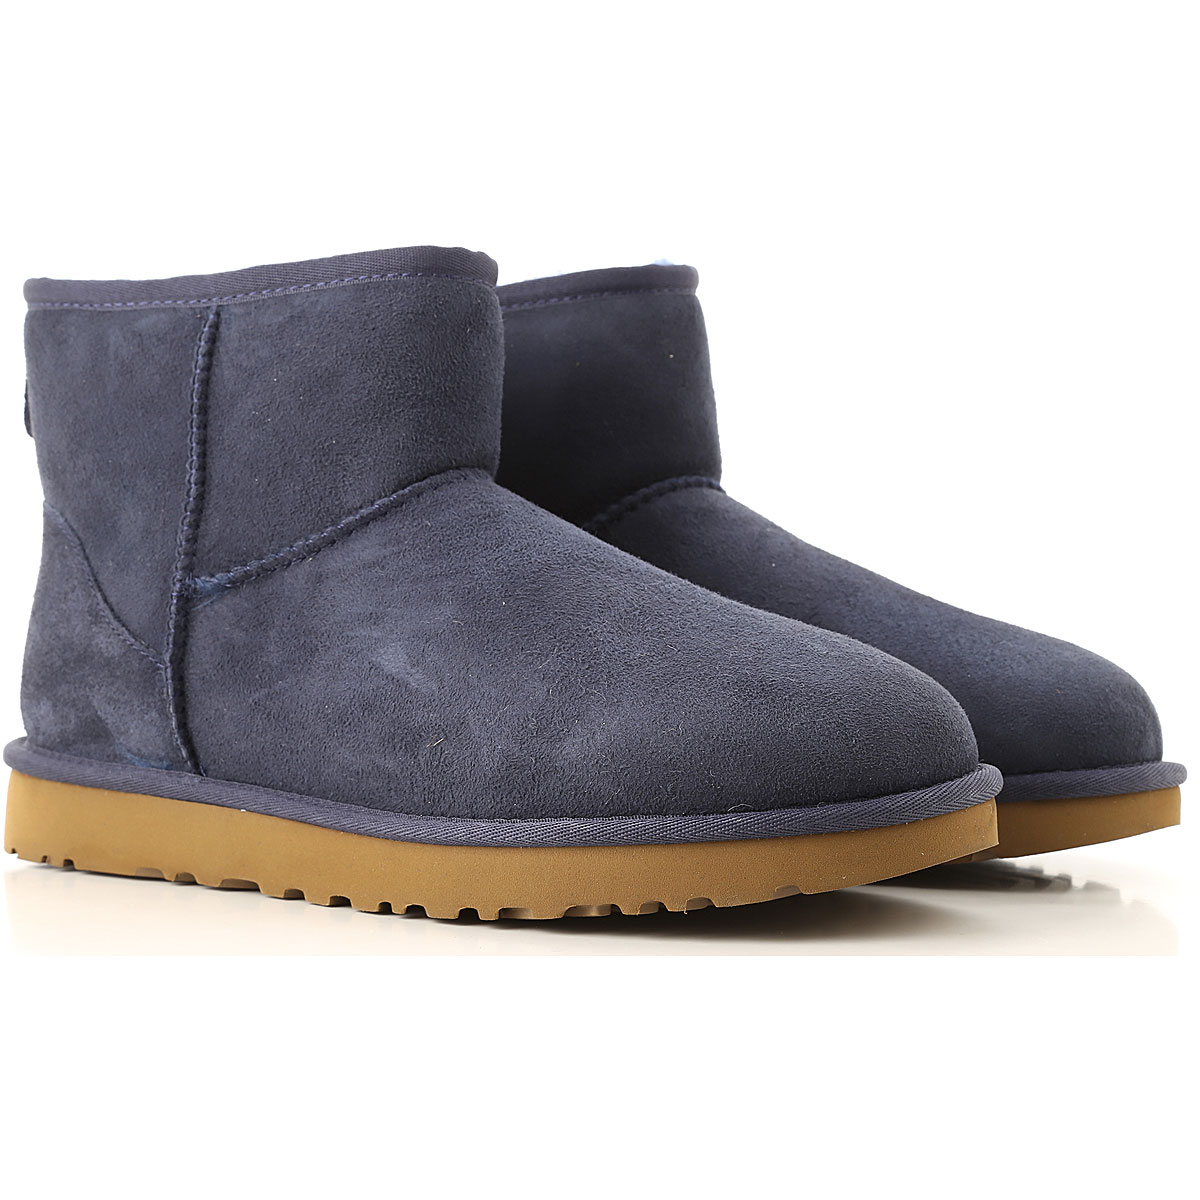 Image of UGG Boots for Men, Booties, navy, Suede leather, 2017, USA 5 UK 3 5 EU 36 JAPAN 220 USA 6 UK 4 5 EU 37 JAPAN 230 USA 7 UK 5 5 EU 38 JAPAN 240 USA 8 UK 6 5 EU 39 JAPAN 250 USA 9 UK 7 5 EU 40 JAPAN 260 USA 10 UK 8 5 EU 41 JAPAN 270